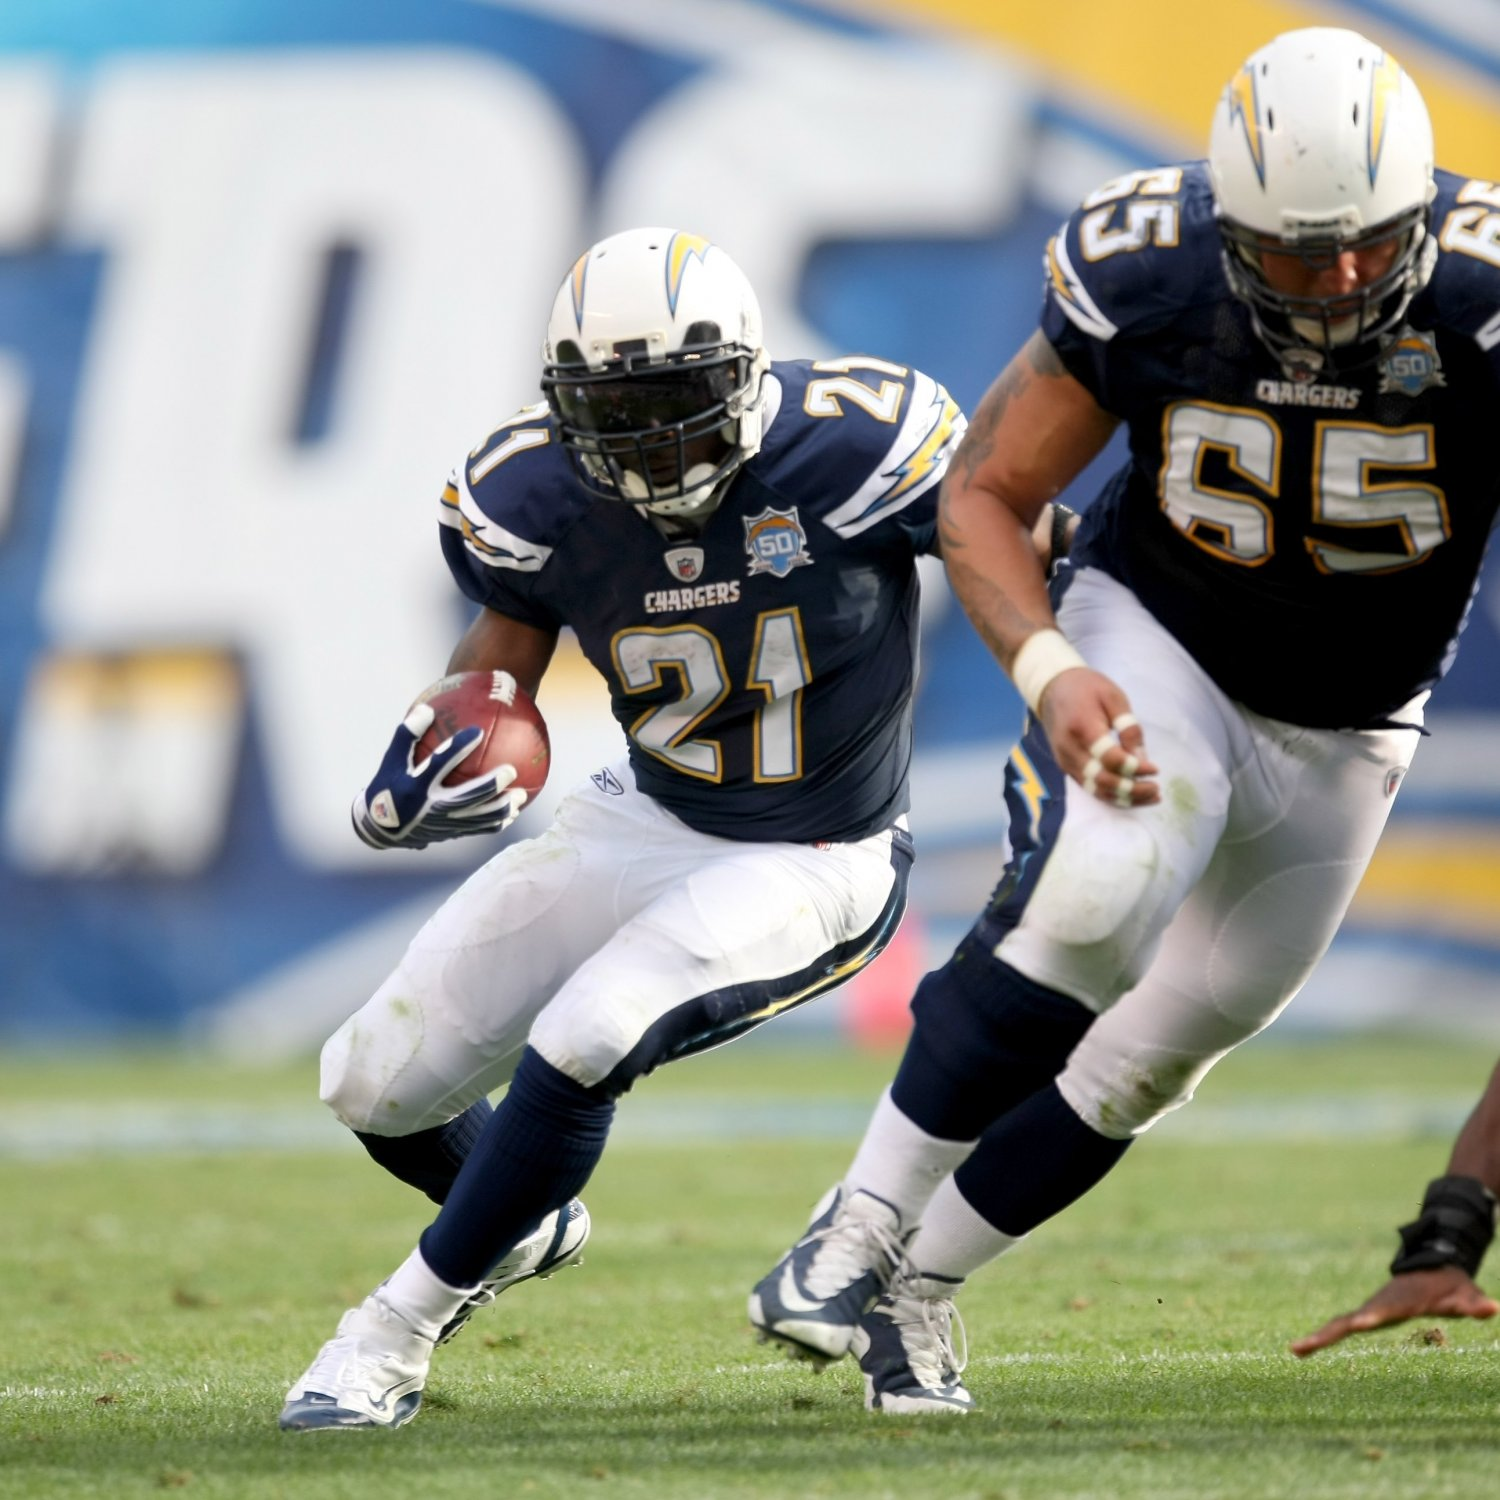 San Diego Chargers Best Players: San Diego Chargers' All-Time Top 50 Players